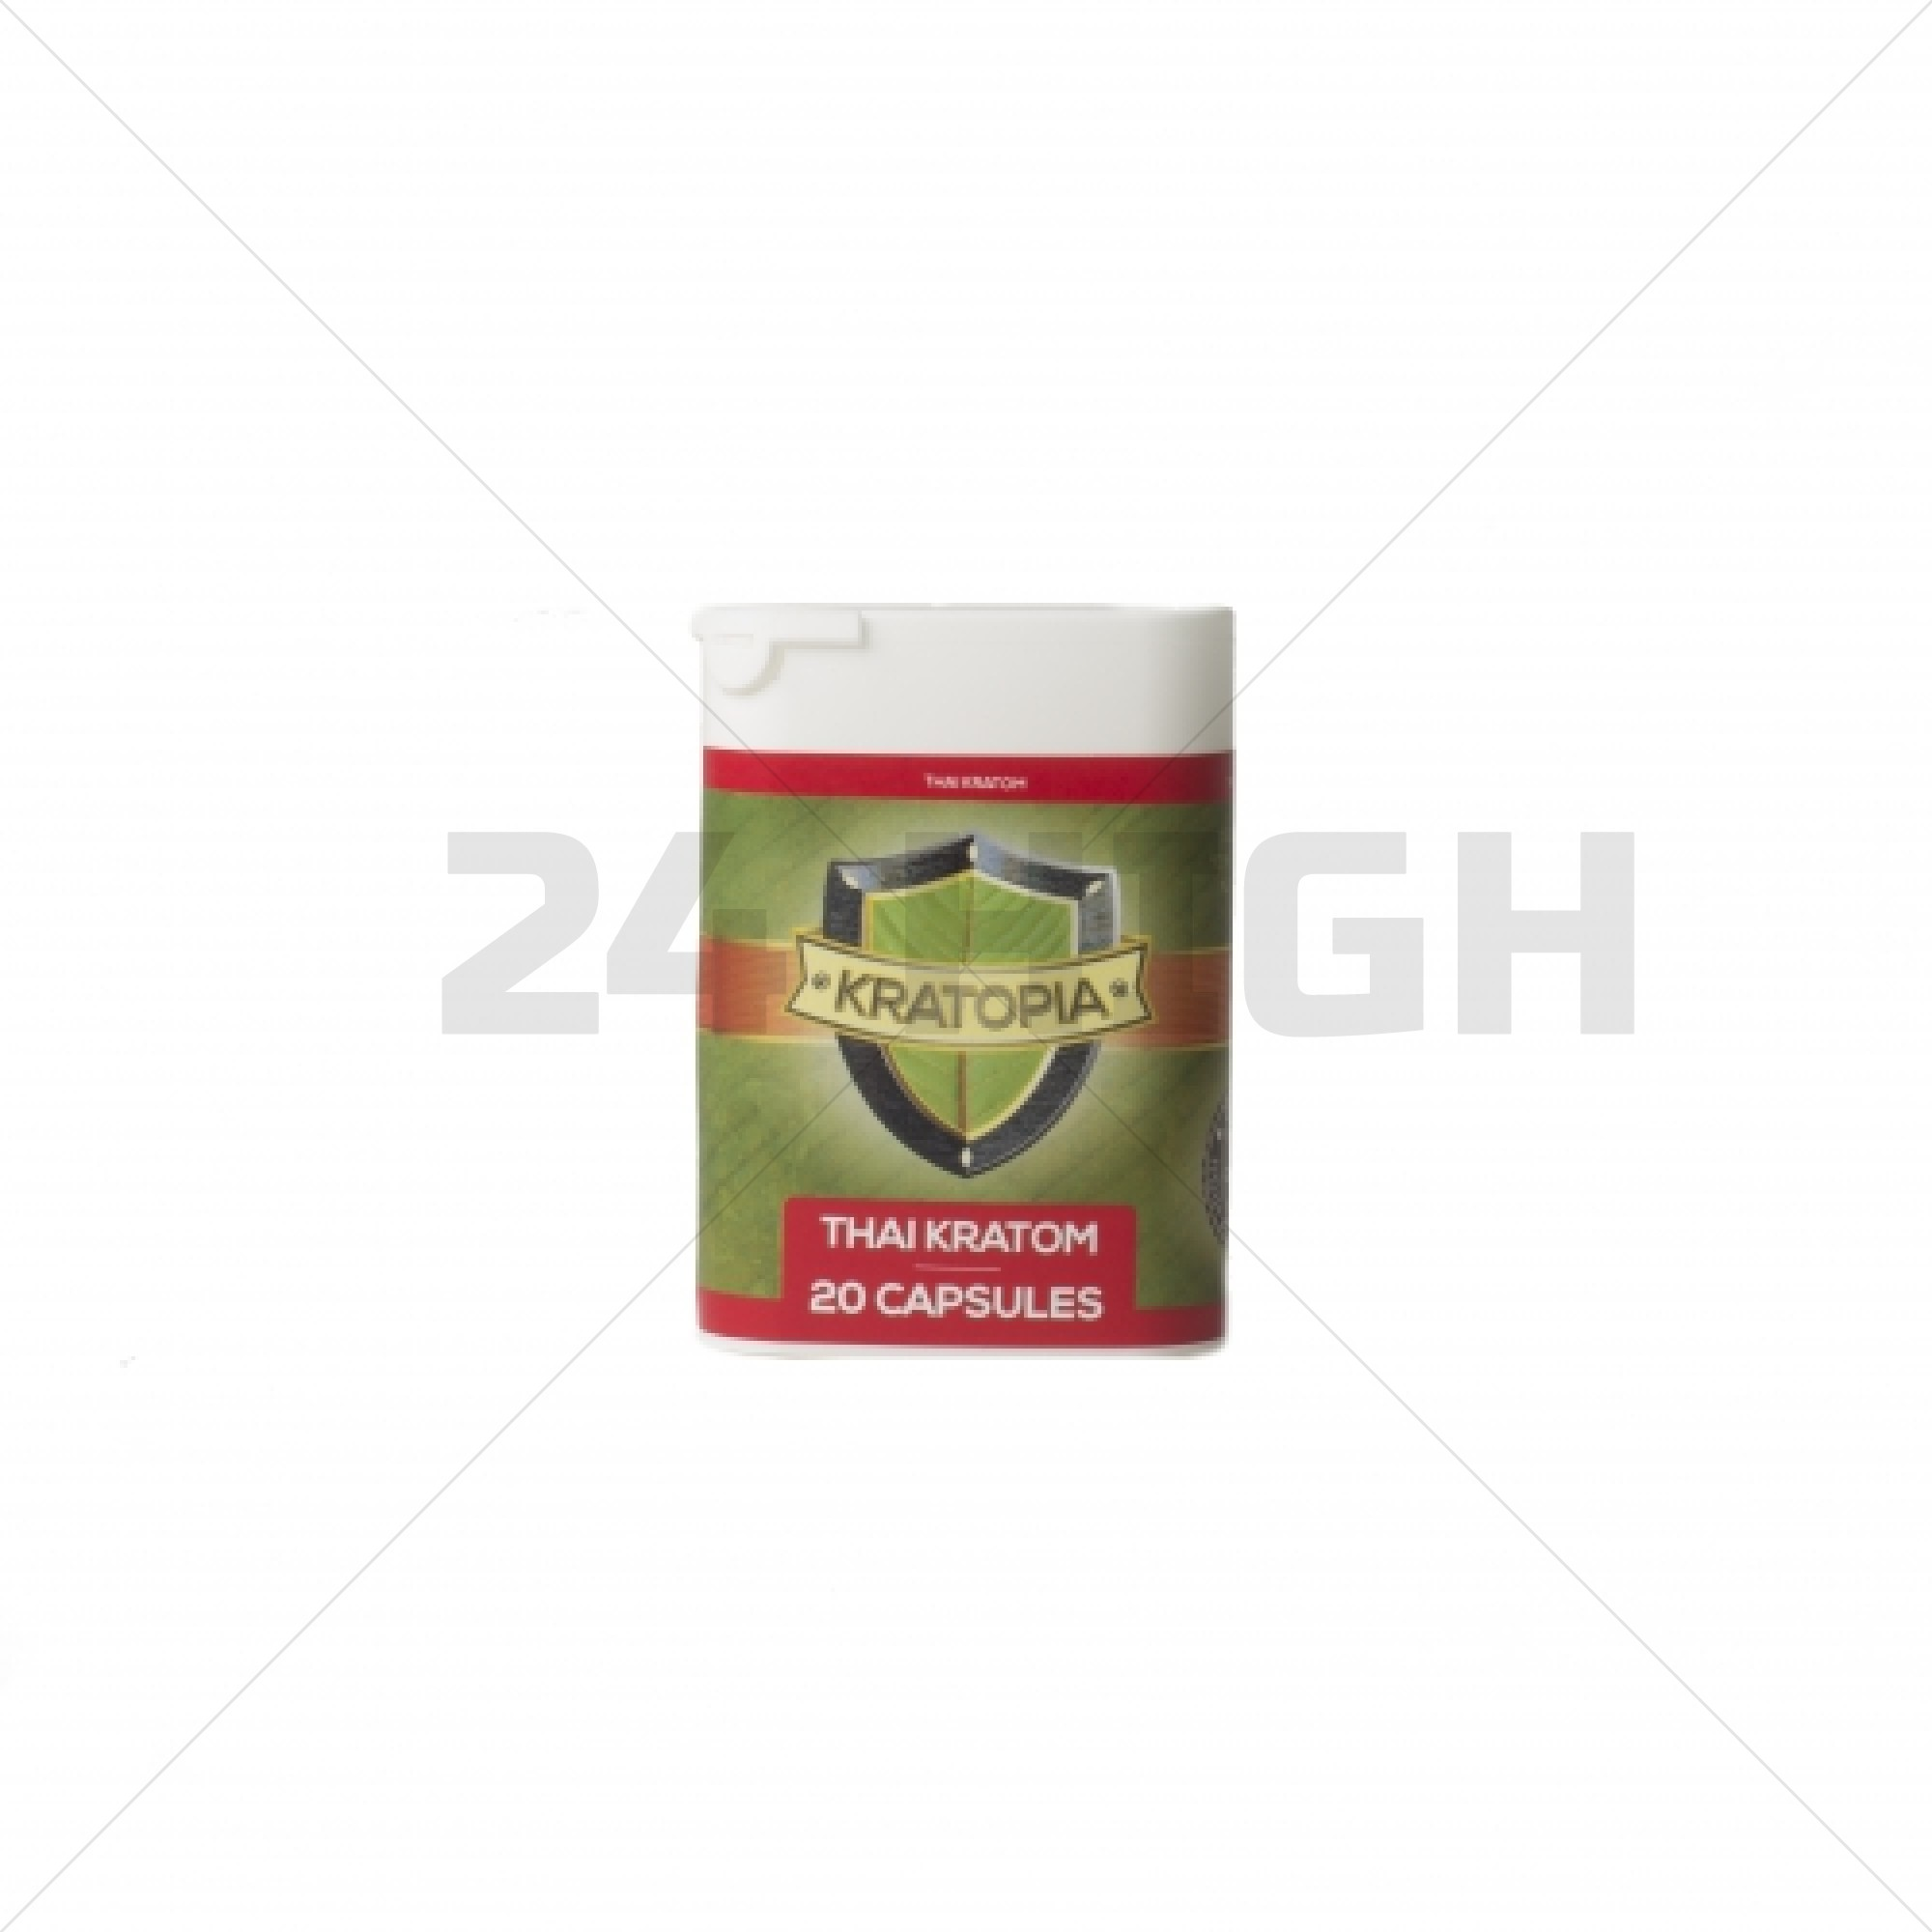 Thai Kratom capsules red